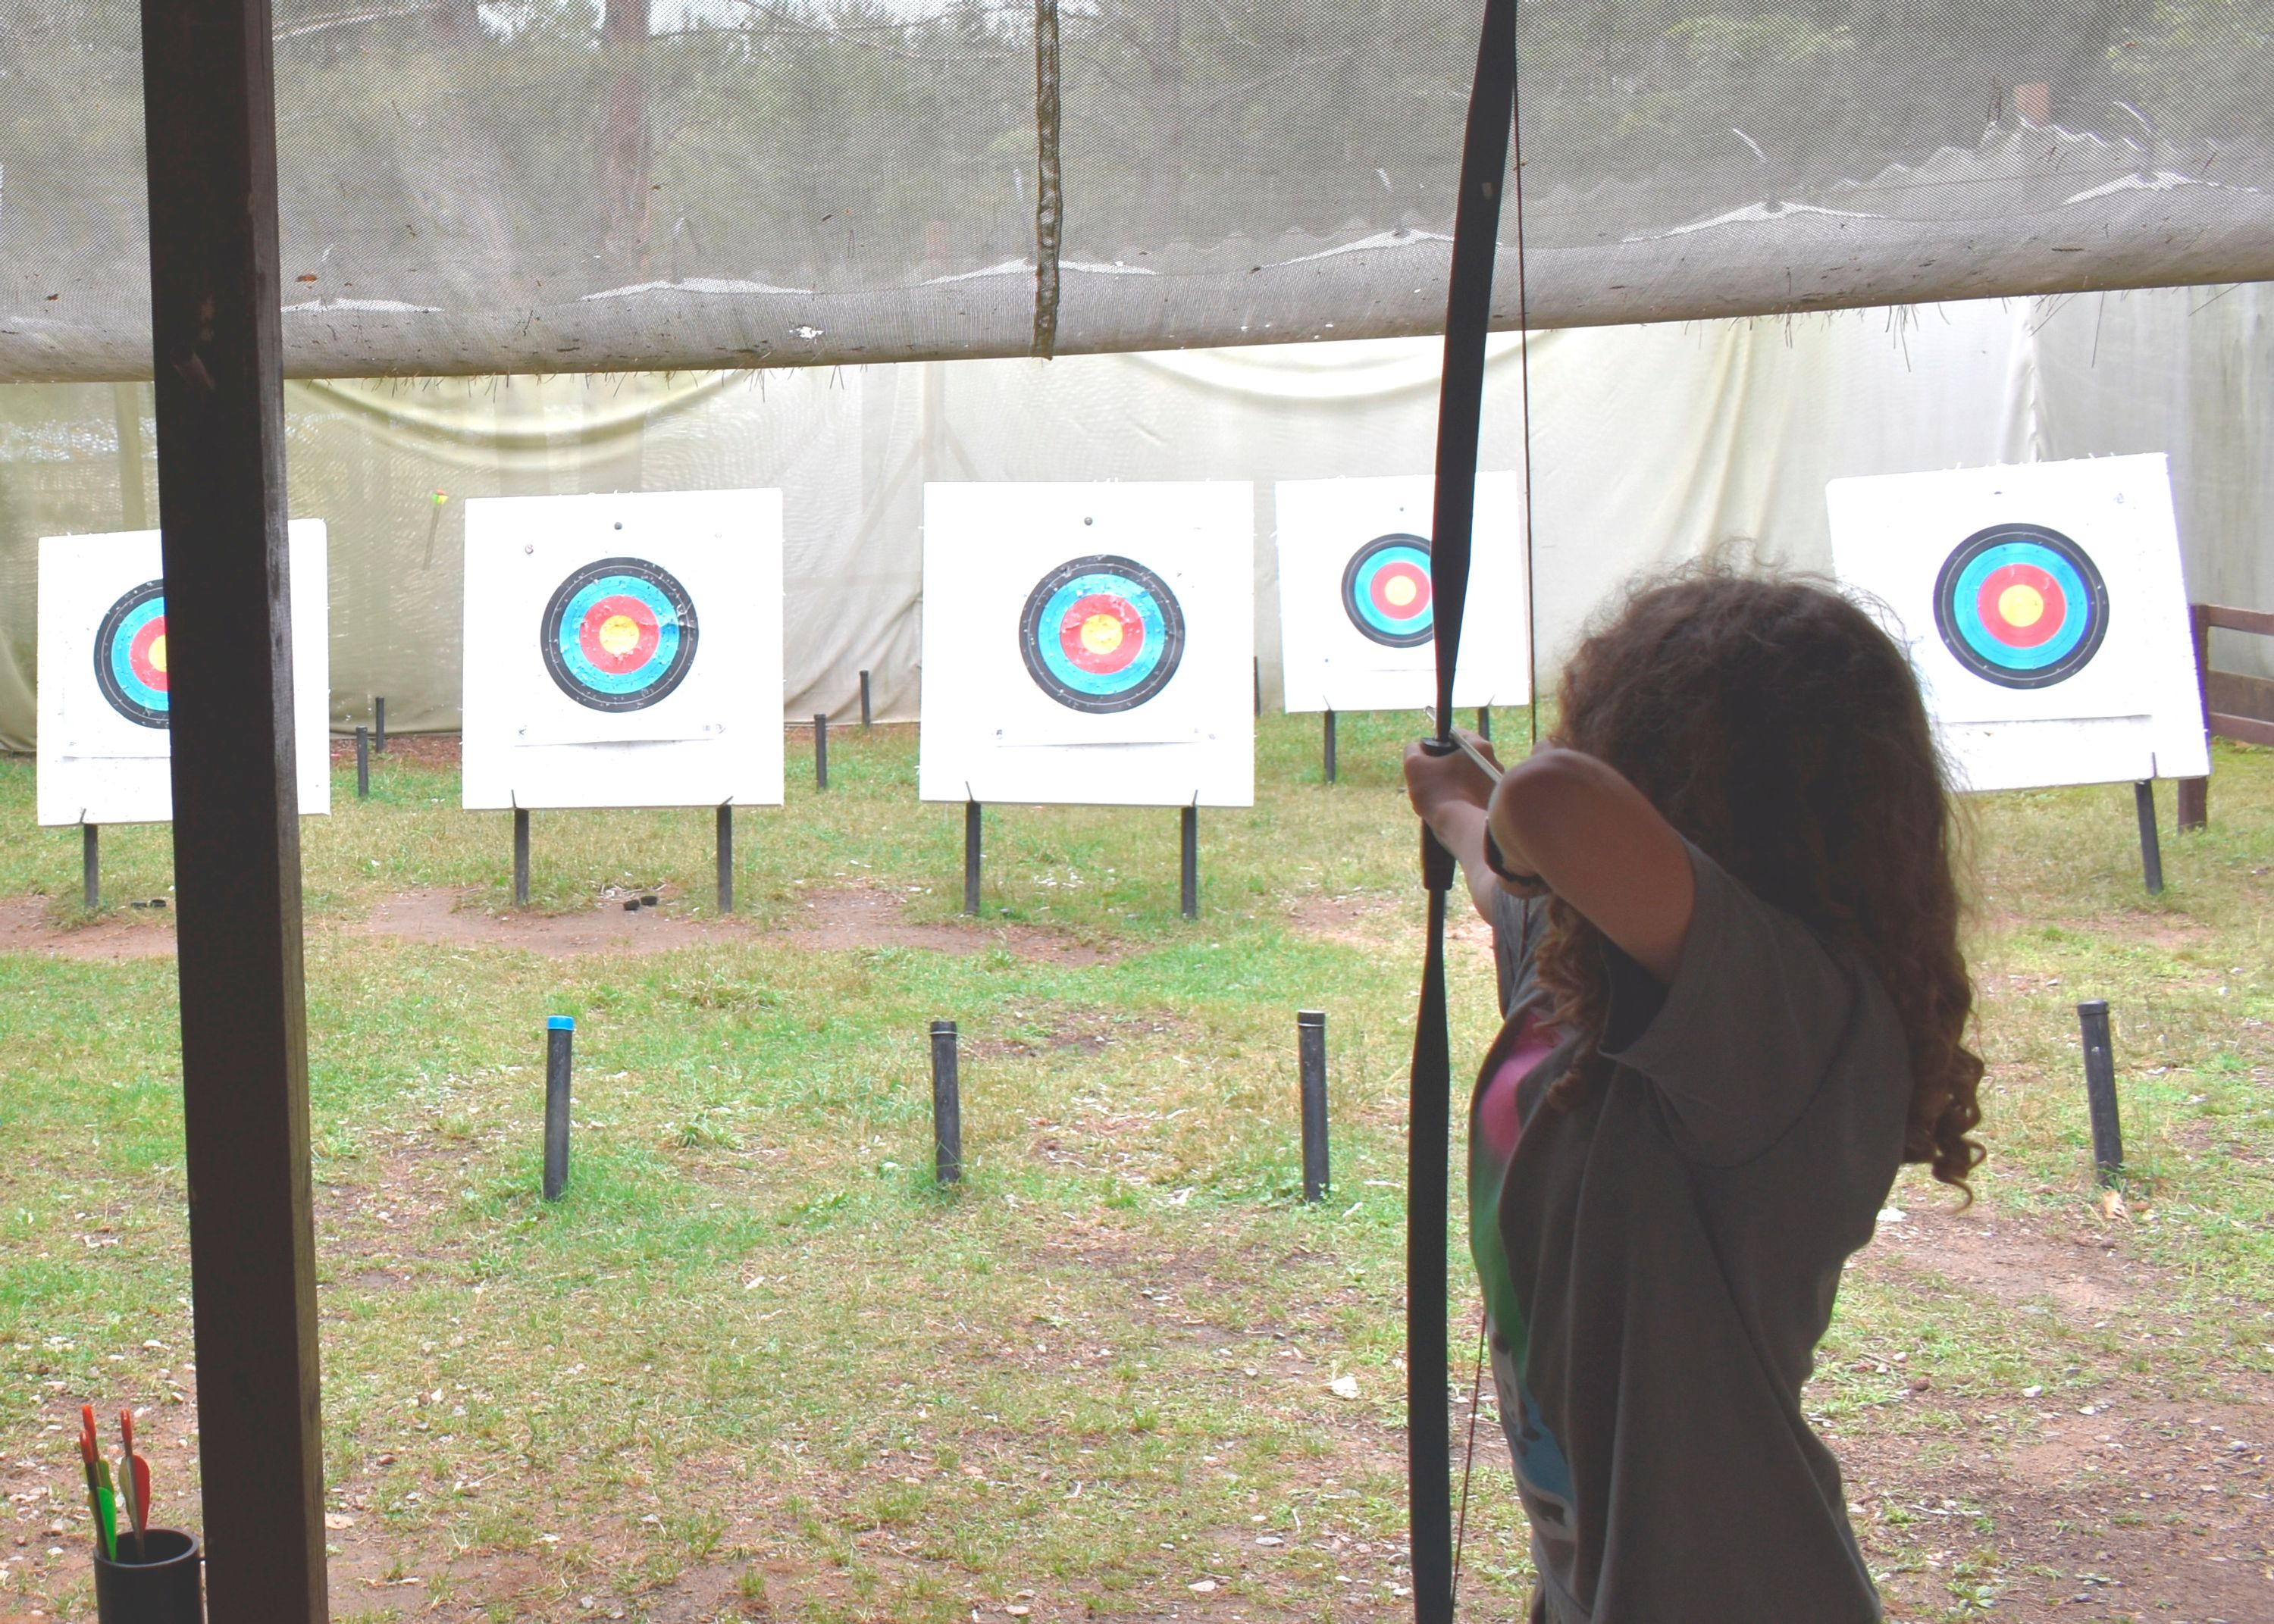 Camper doing Archery outside at Christian Adventure Summer Camp